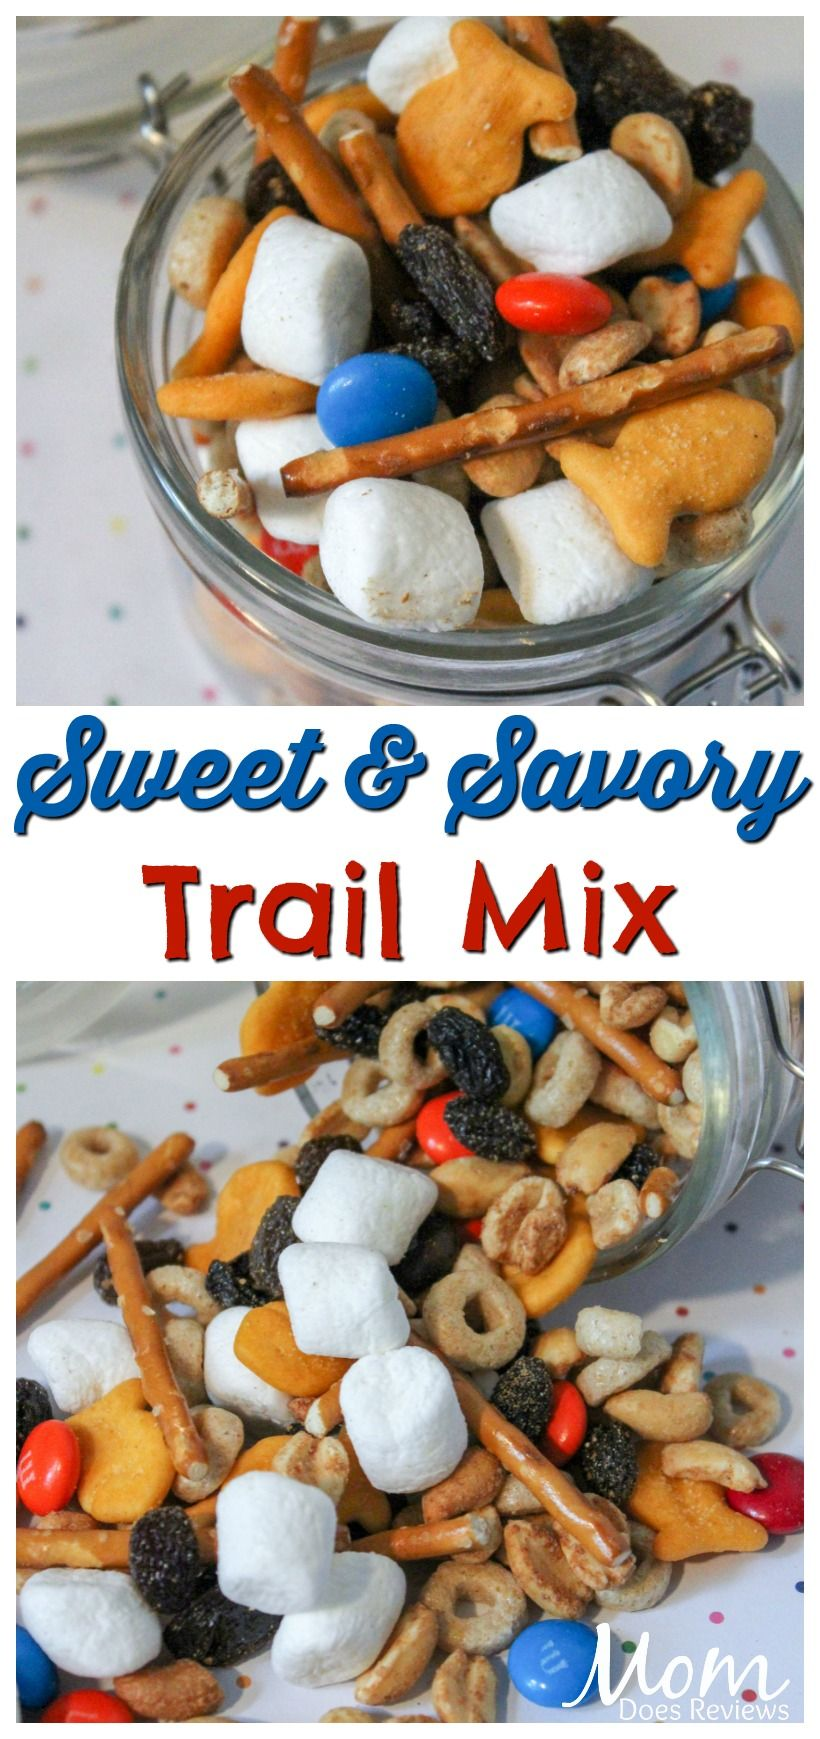 Trail Mix Everyone will Love!